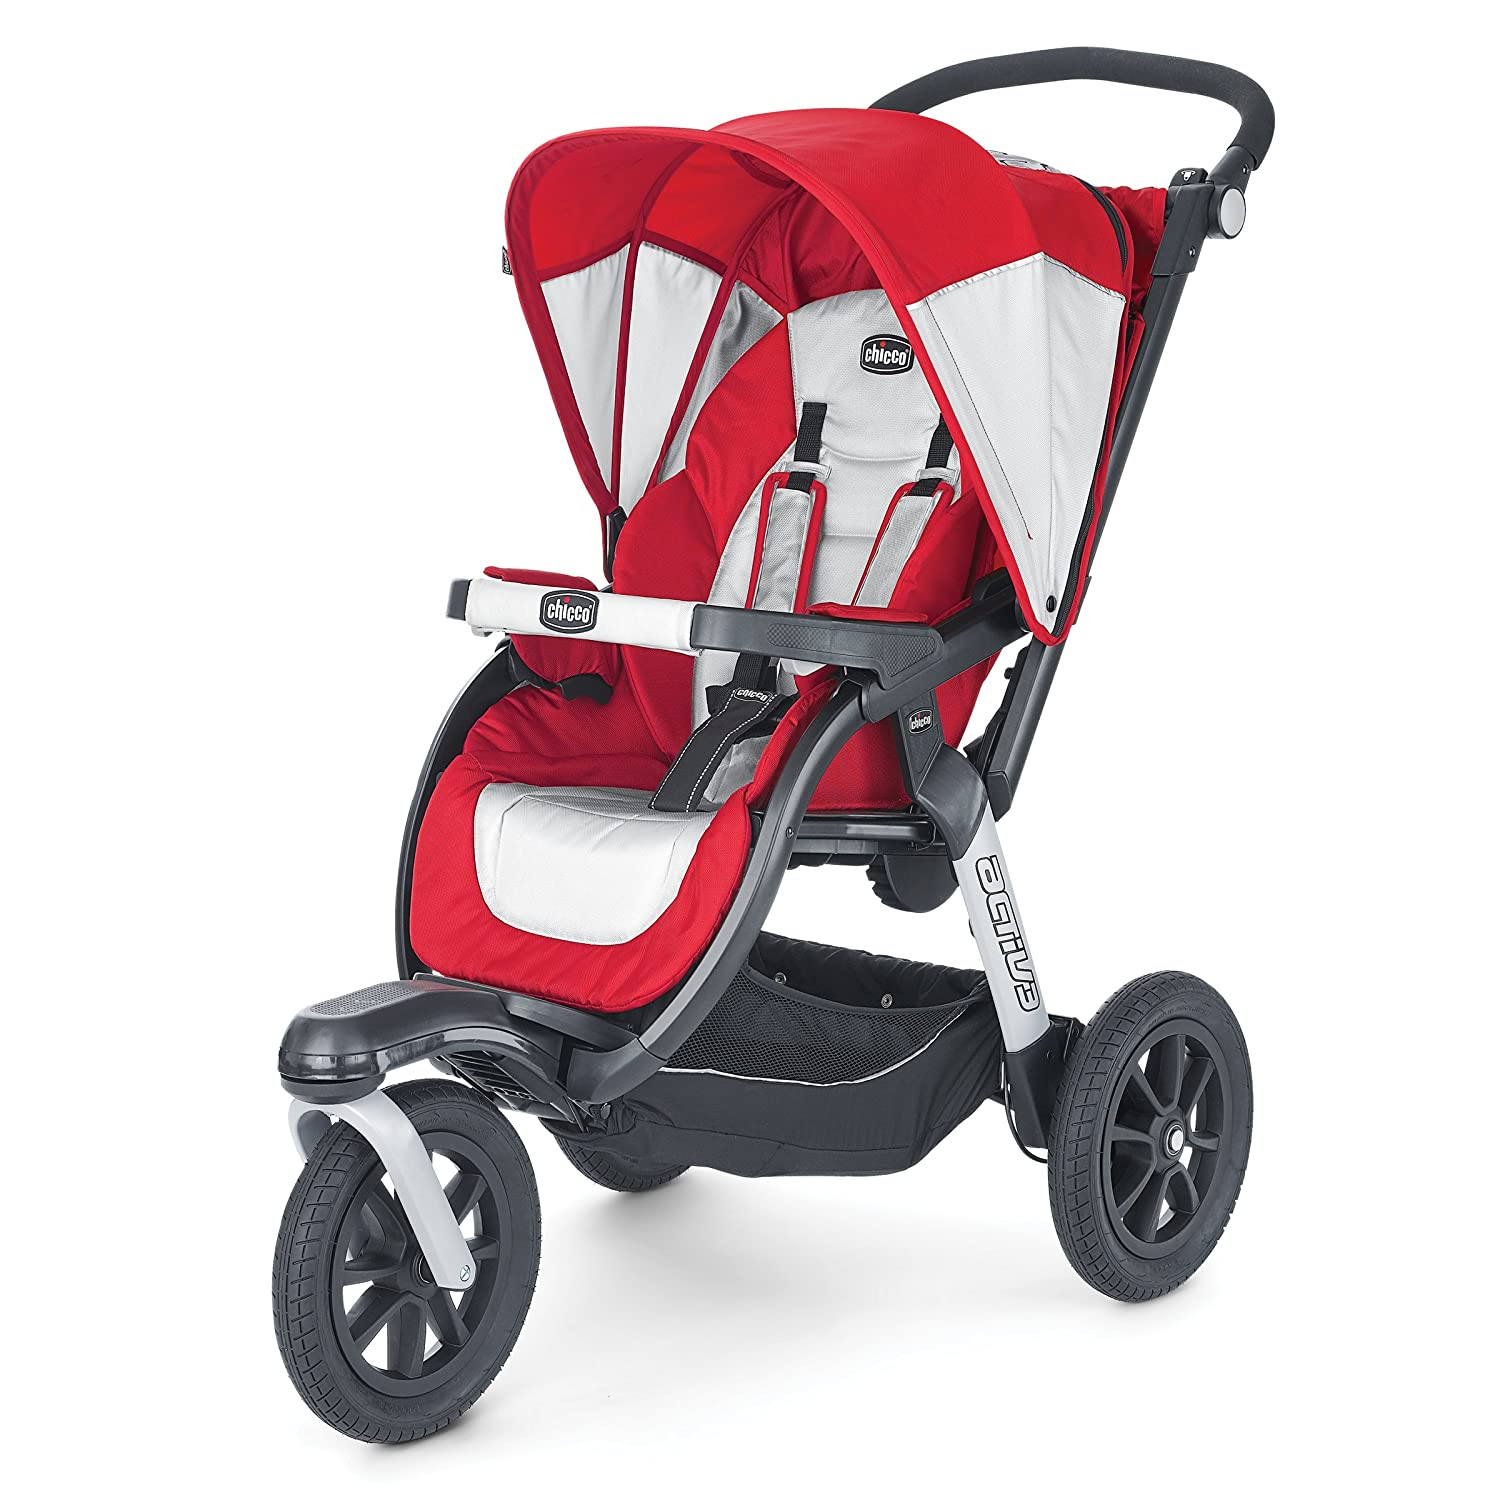 Amazon.com: Chicco activ3 Jogger carriola, Snap Dragon ...